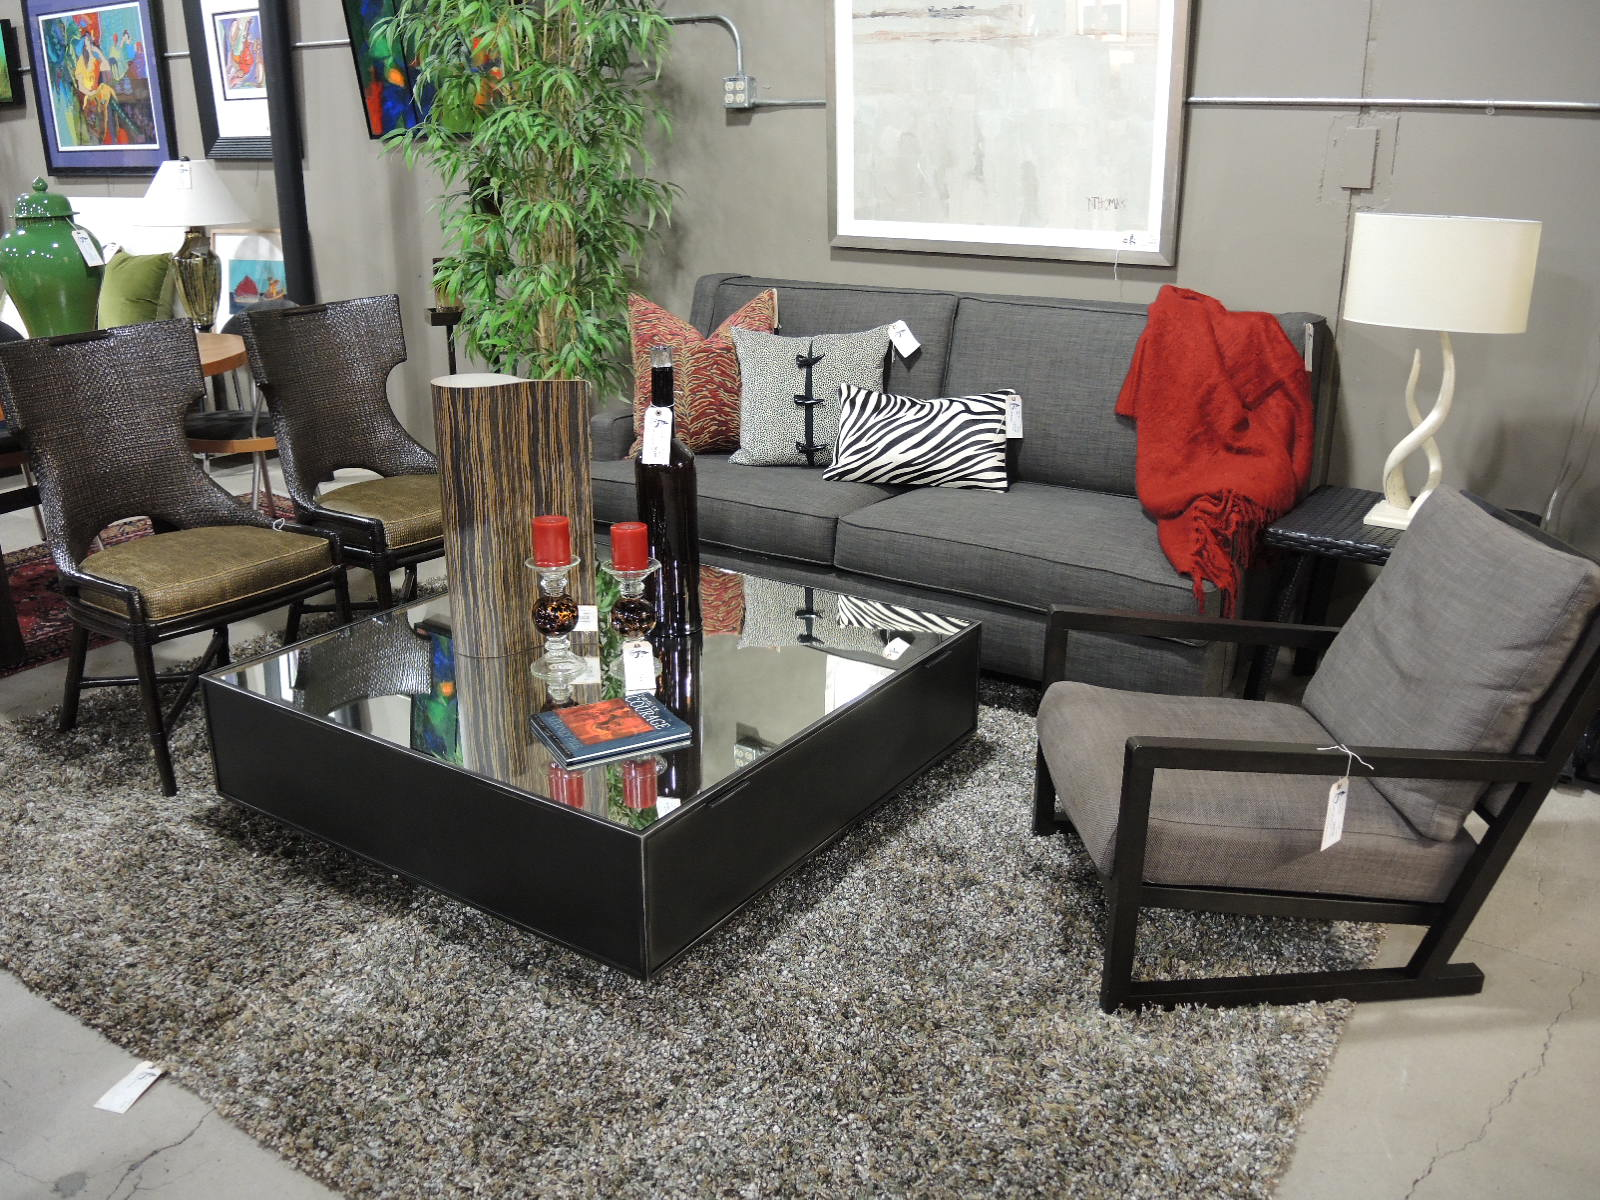 A Smart Charcoal Color And A High Back Silhouette Lend Sophistication To  This Petite Two Seat Sofa. Measuring 80u2033W X 38u2033D X 38u2033H, It Is Priced At  $795u2013SOLD.